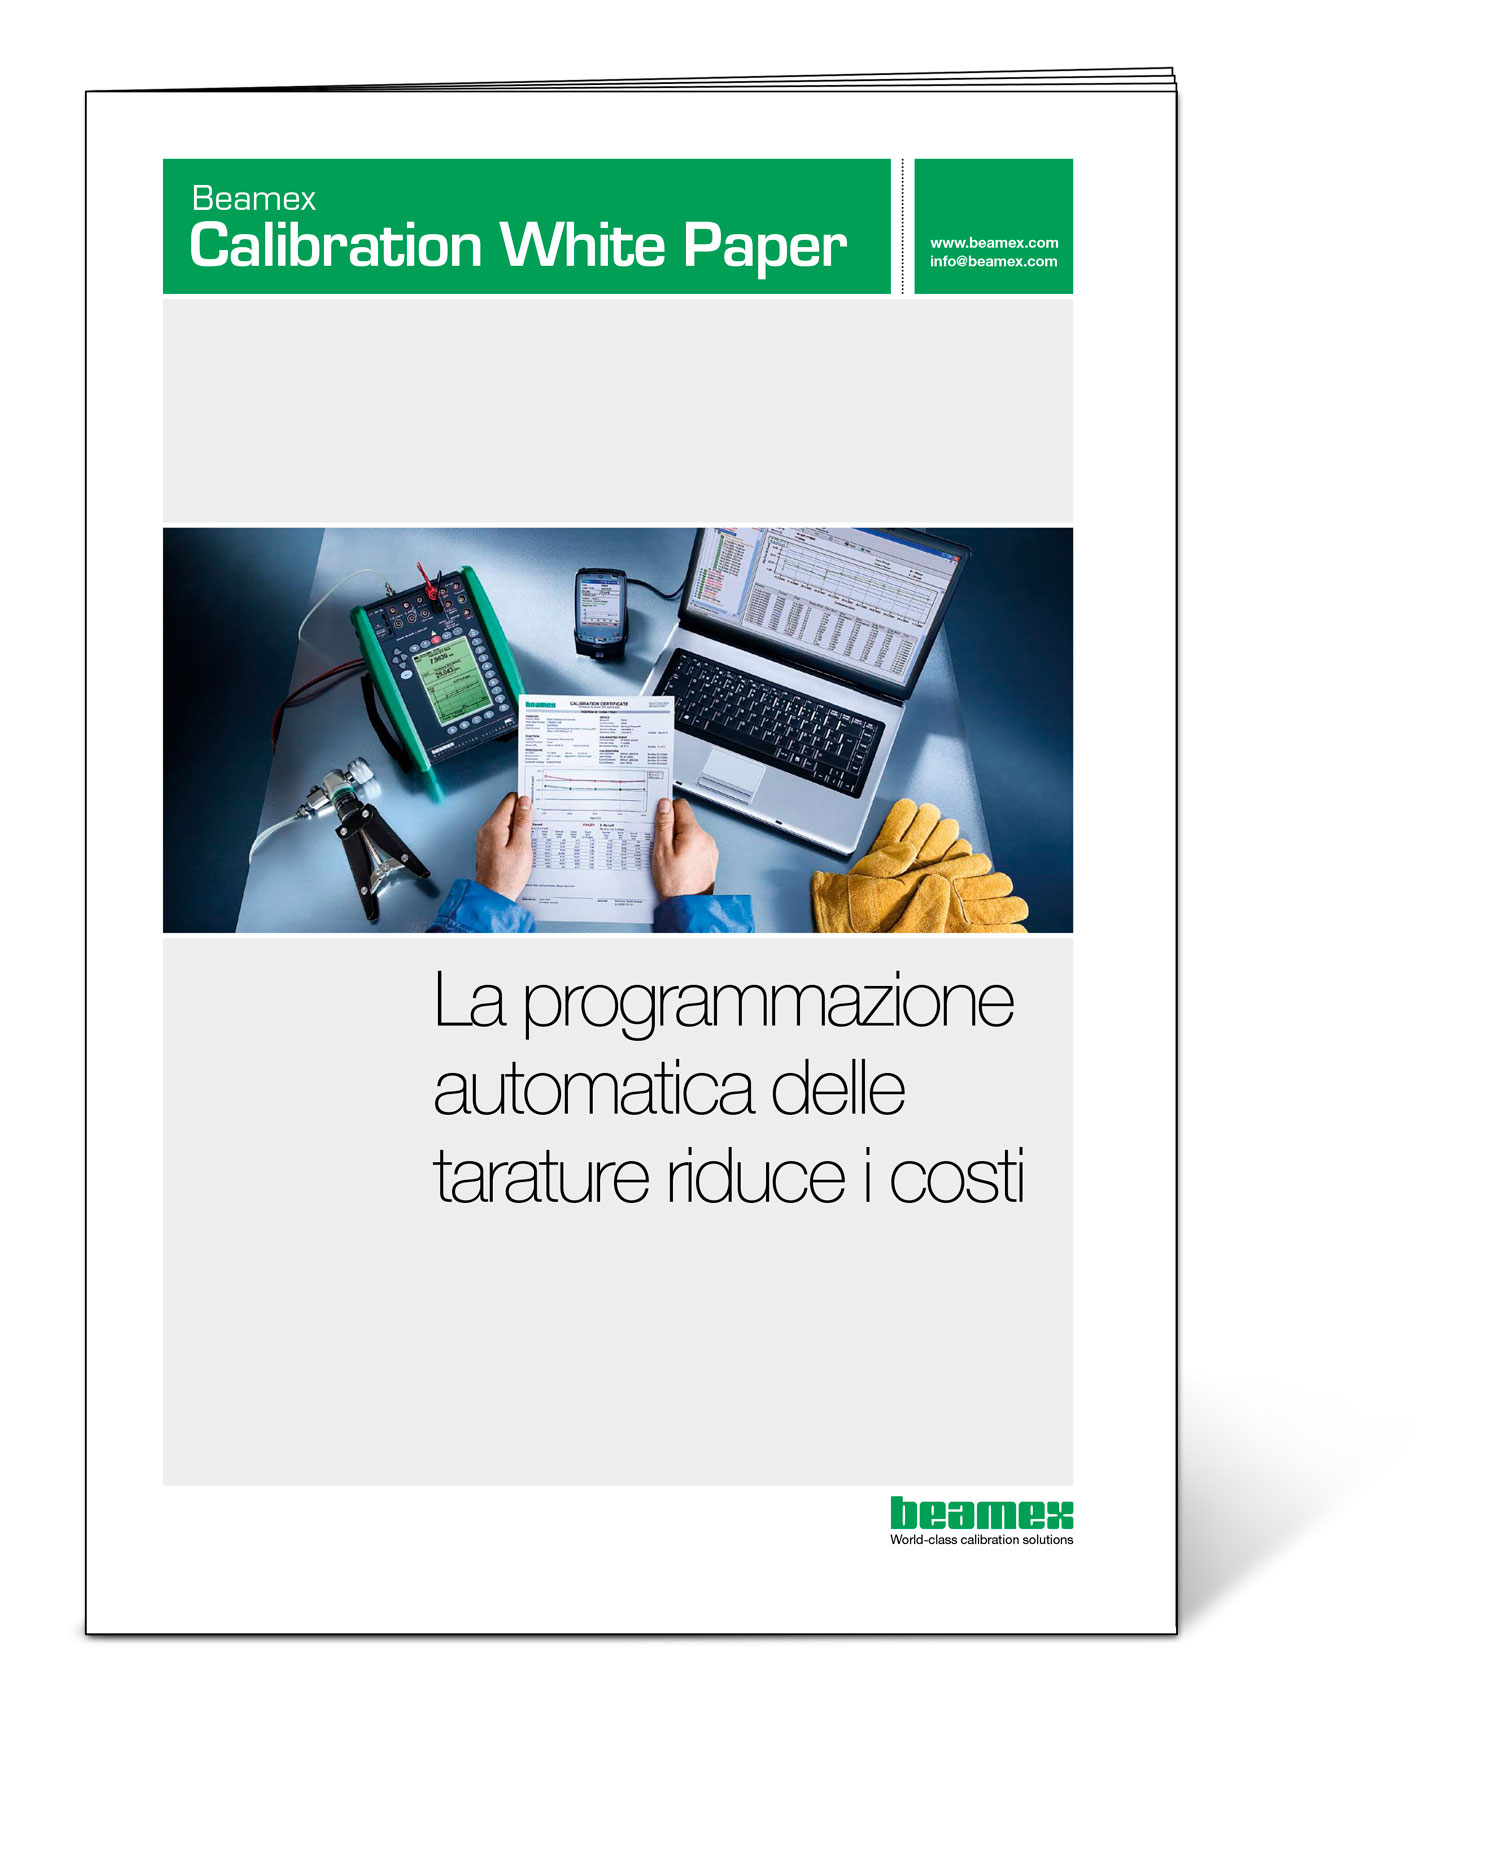 Beamex-WP-Automated-calibration-lowers-costs-ITA-1500px-v1-1.jpg